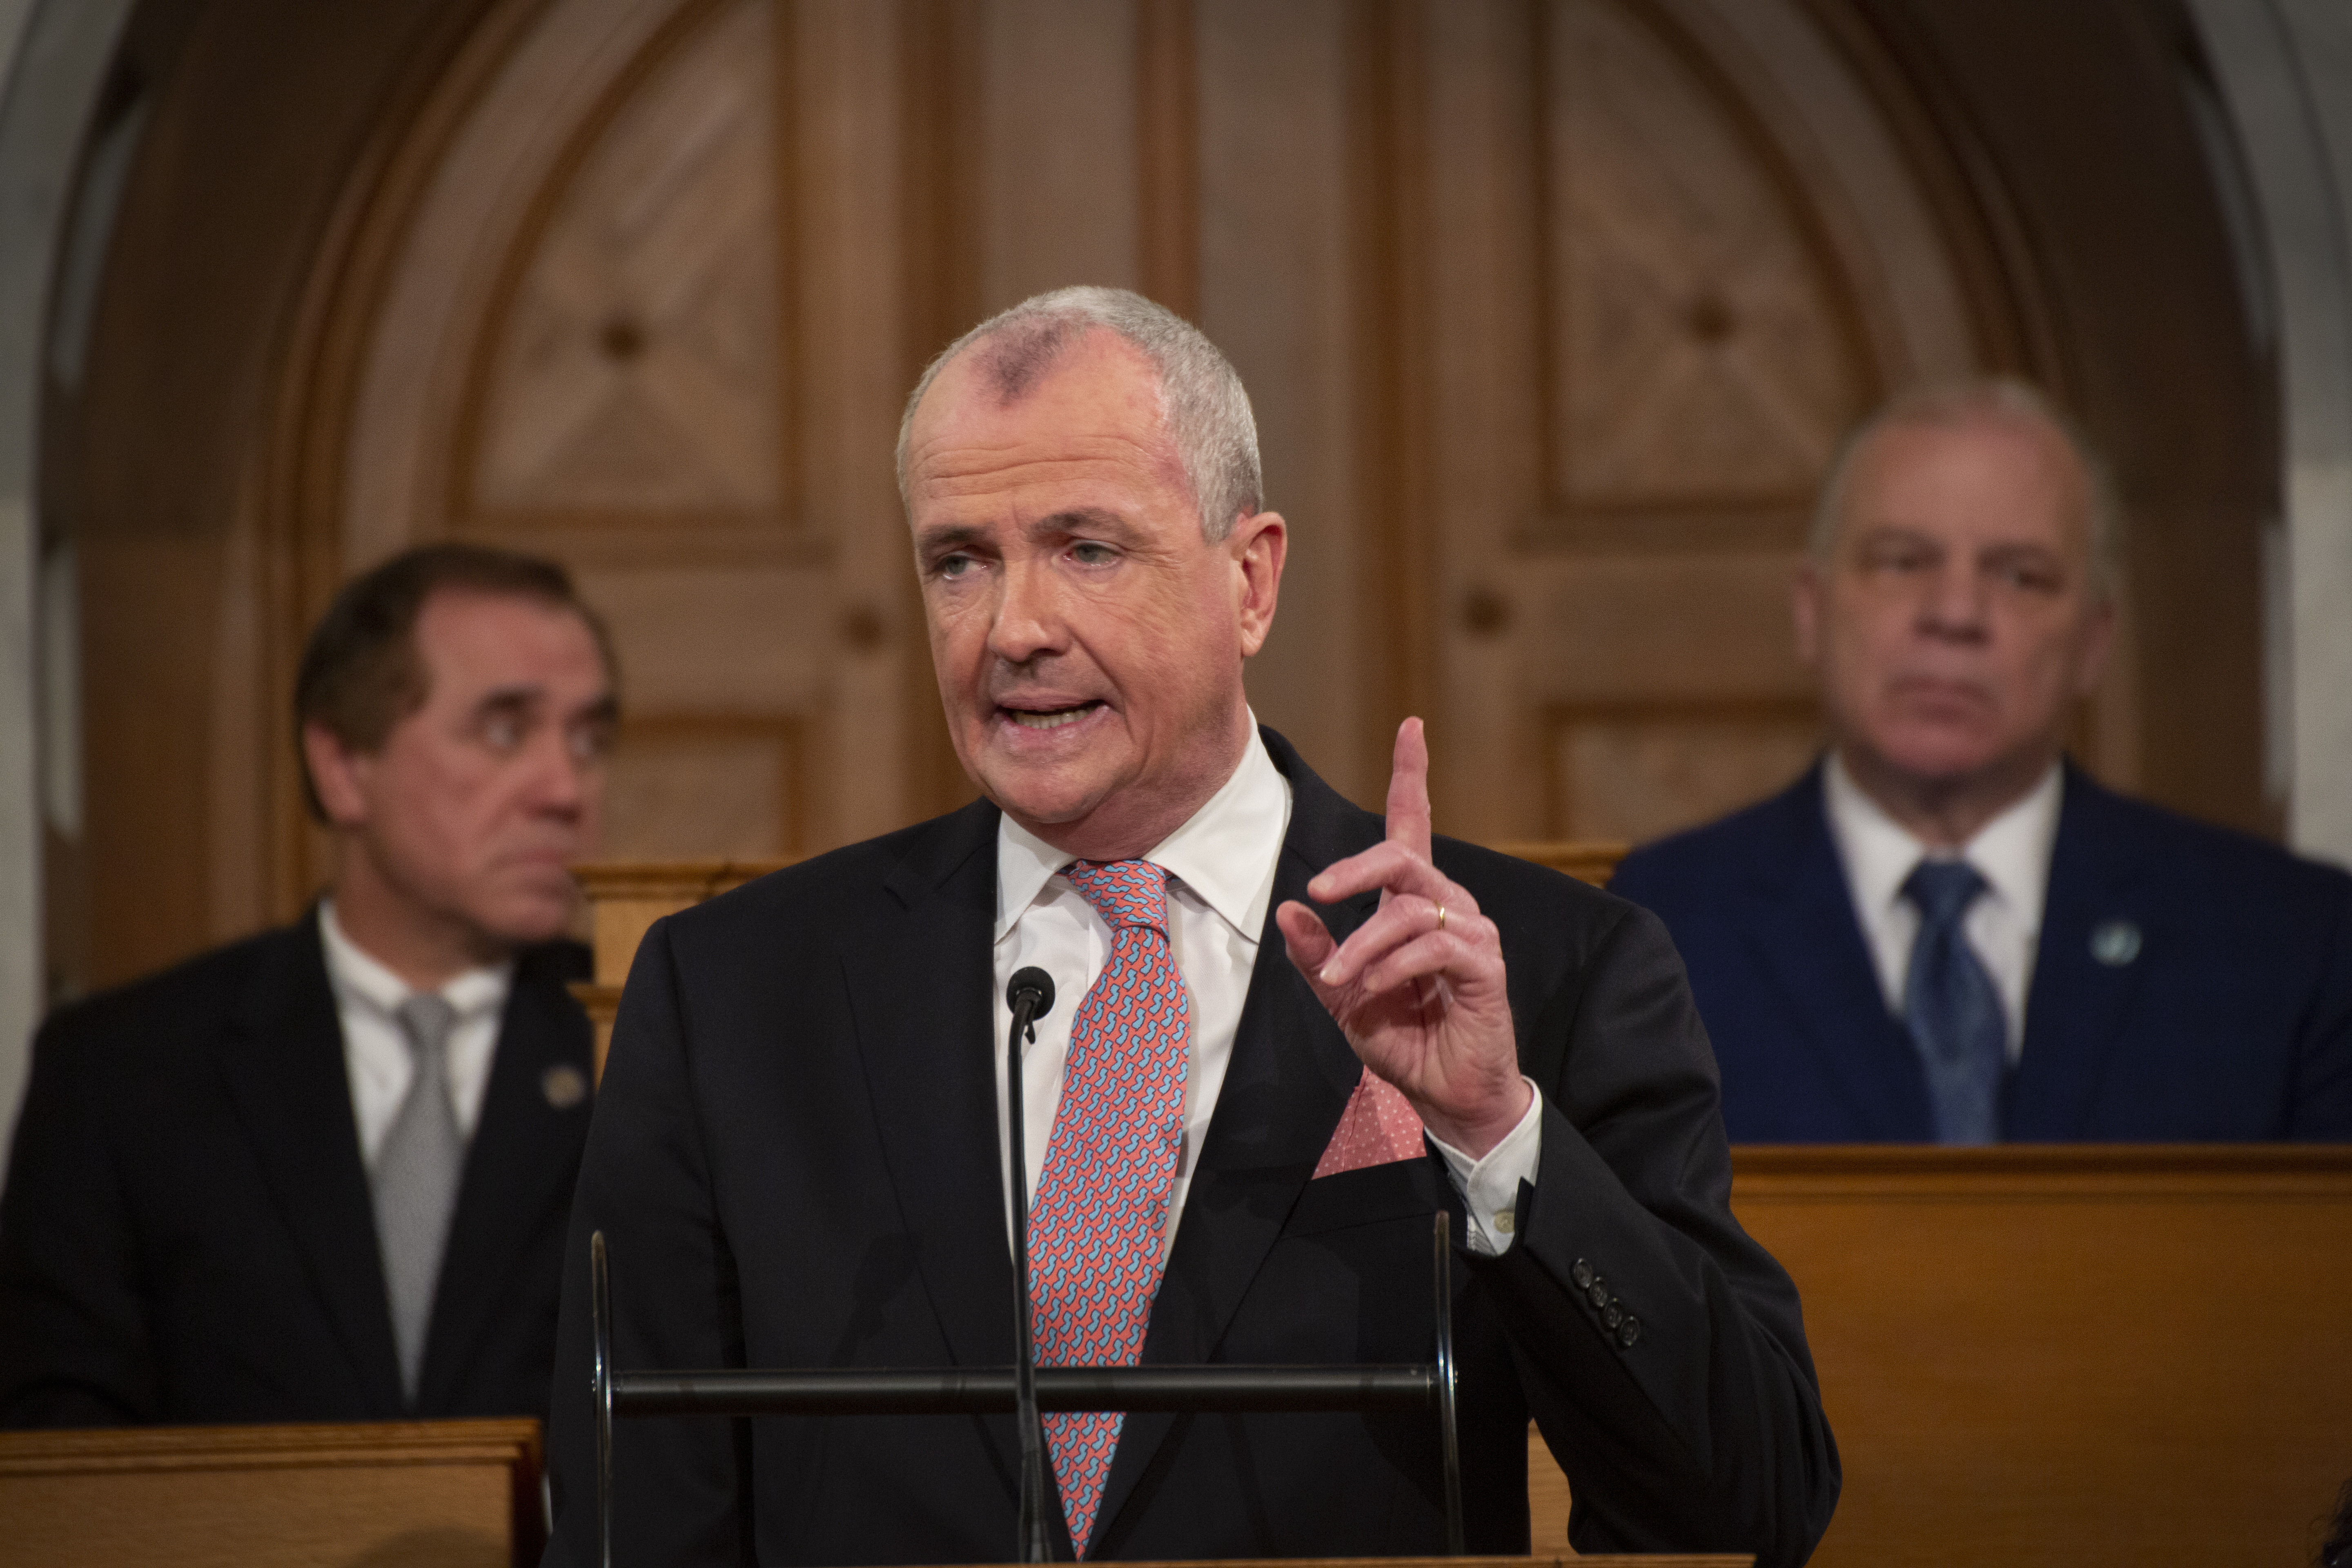 Business leaders say Gov. Murphy's 2020 State of the State message was a missed opportunity